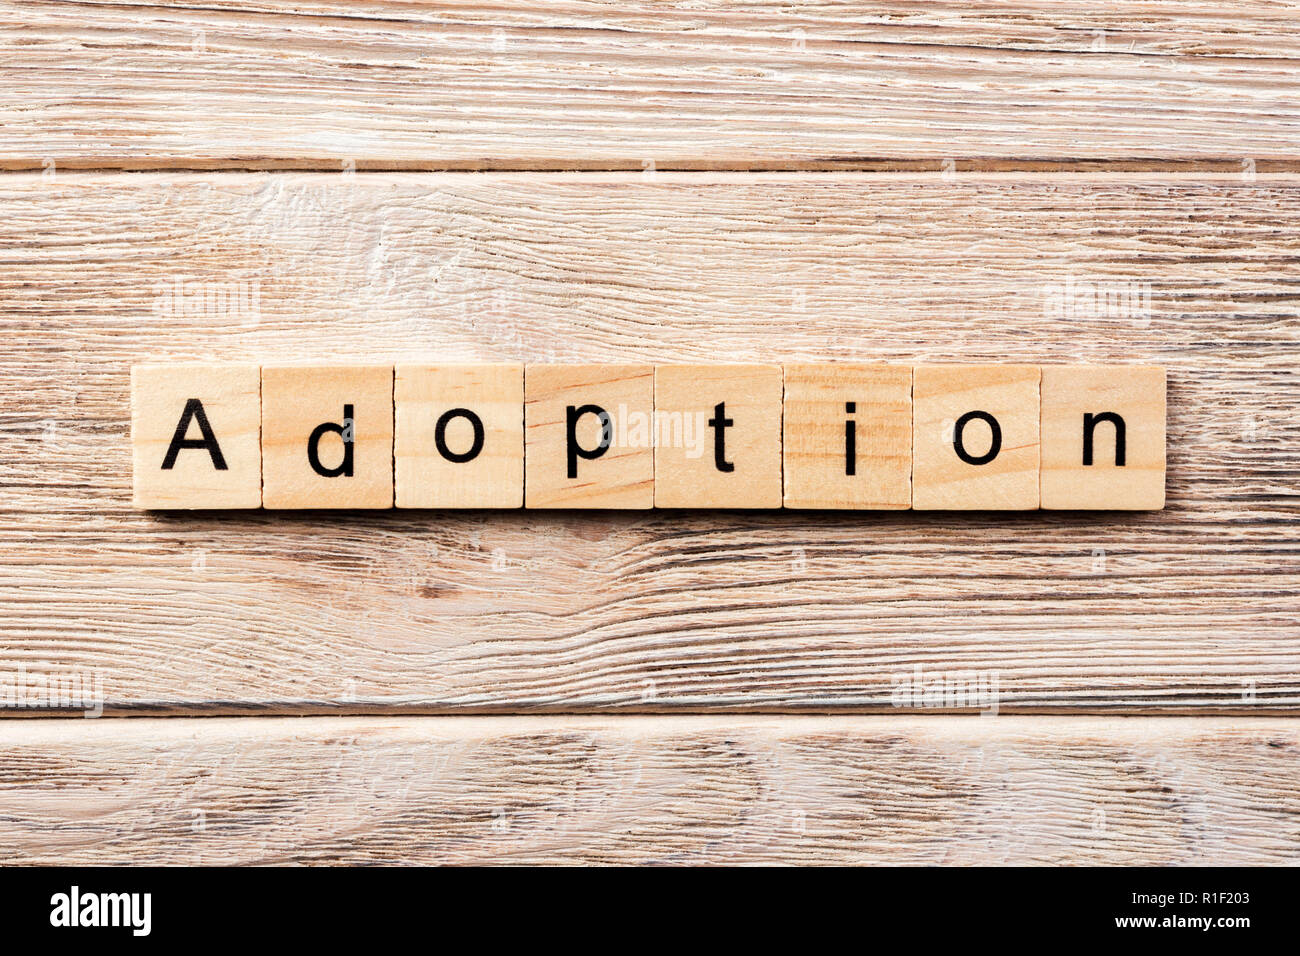 adoption word written on wood block. adoption text on table, concept. - Stock Image